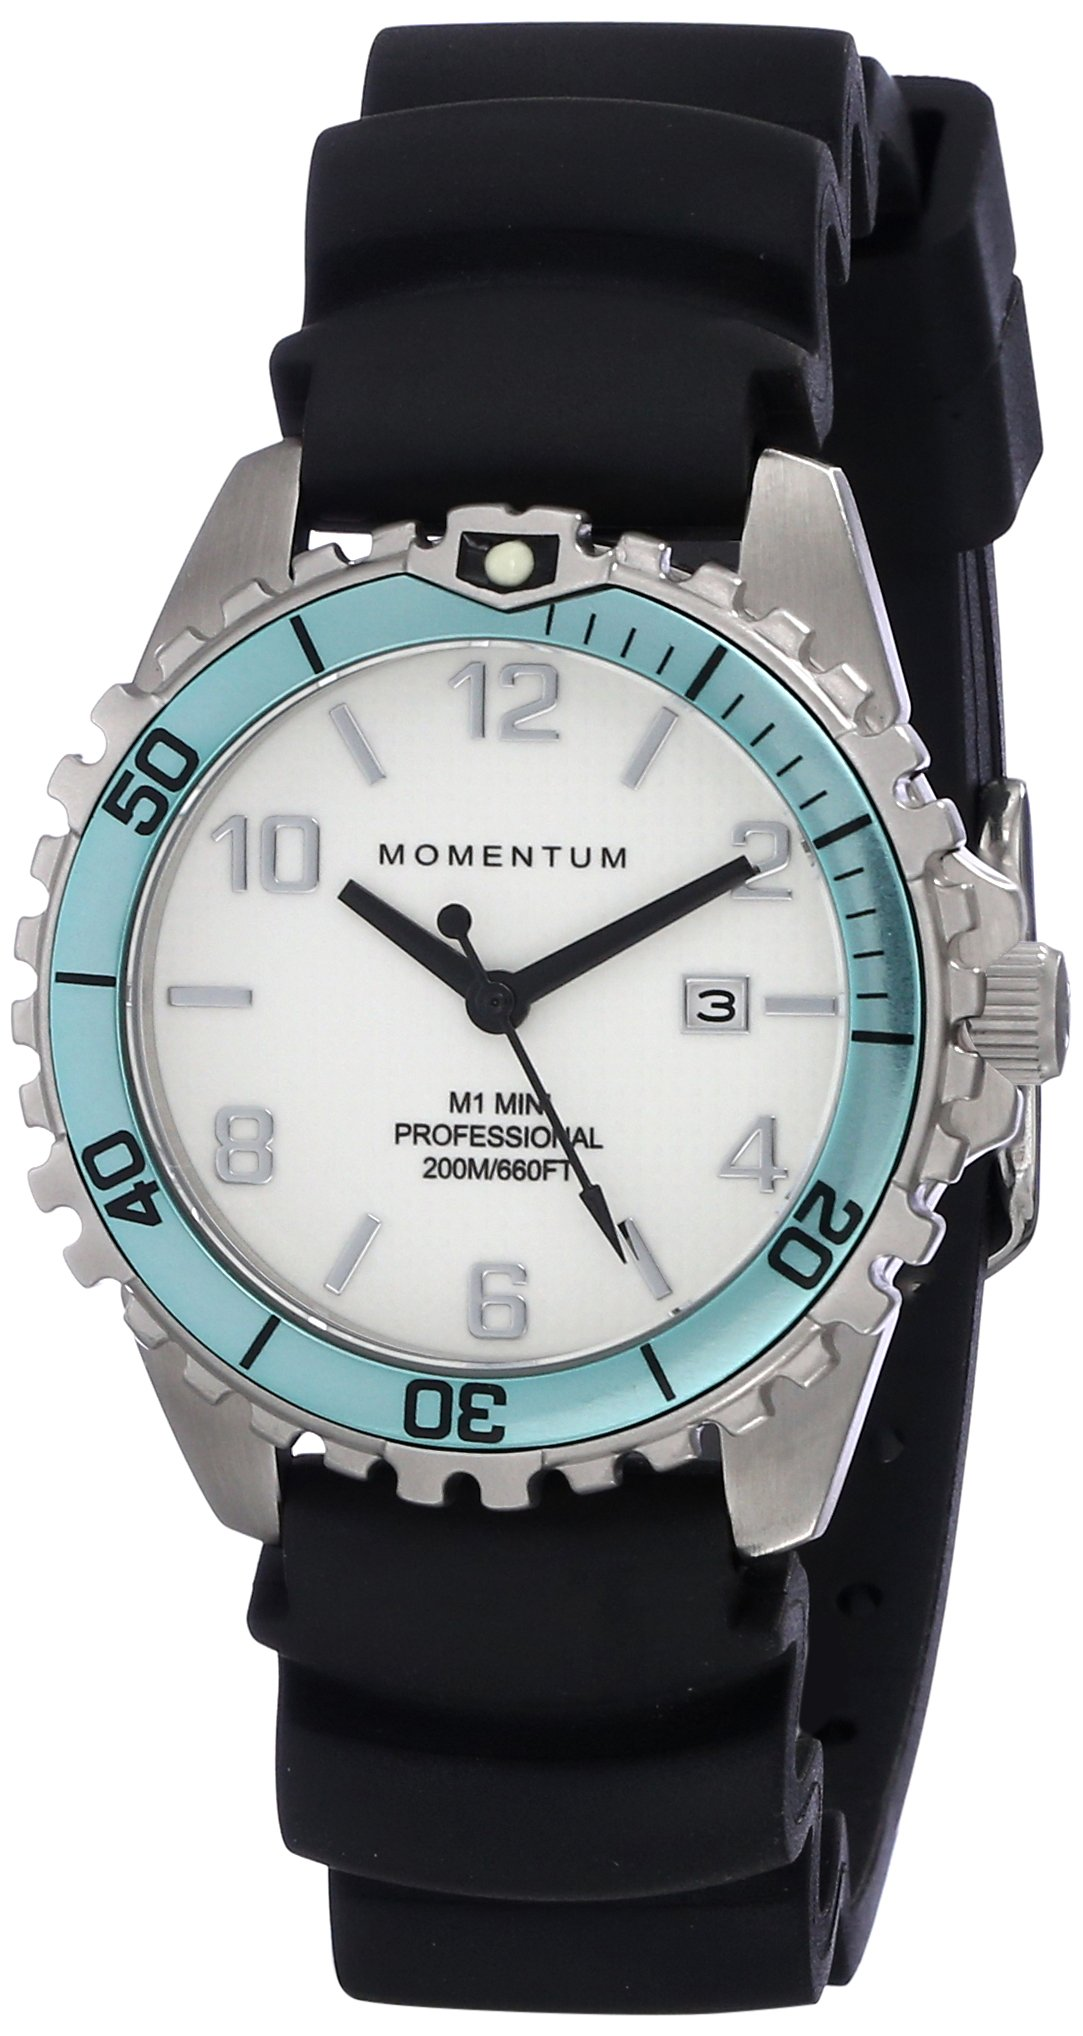 Women's Quartz Watch | M1 Mini by Momentum | Stainless Steel Watches for Women | Dive Watch with Japanese Movement & Analog Display | Water Resistant ladies watch with Date - White / Aqua Rubber